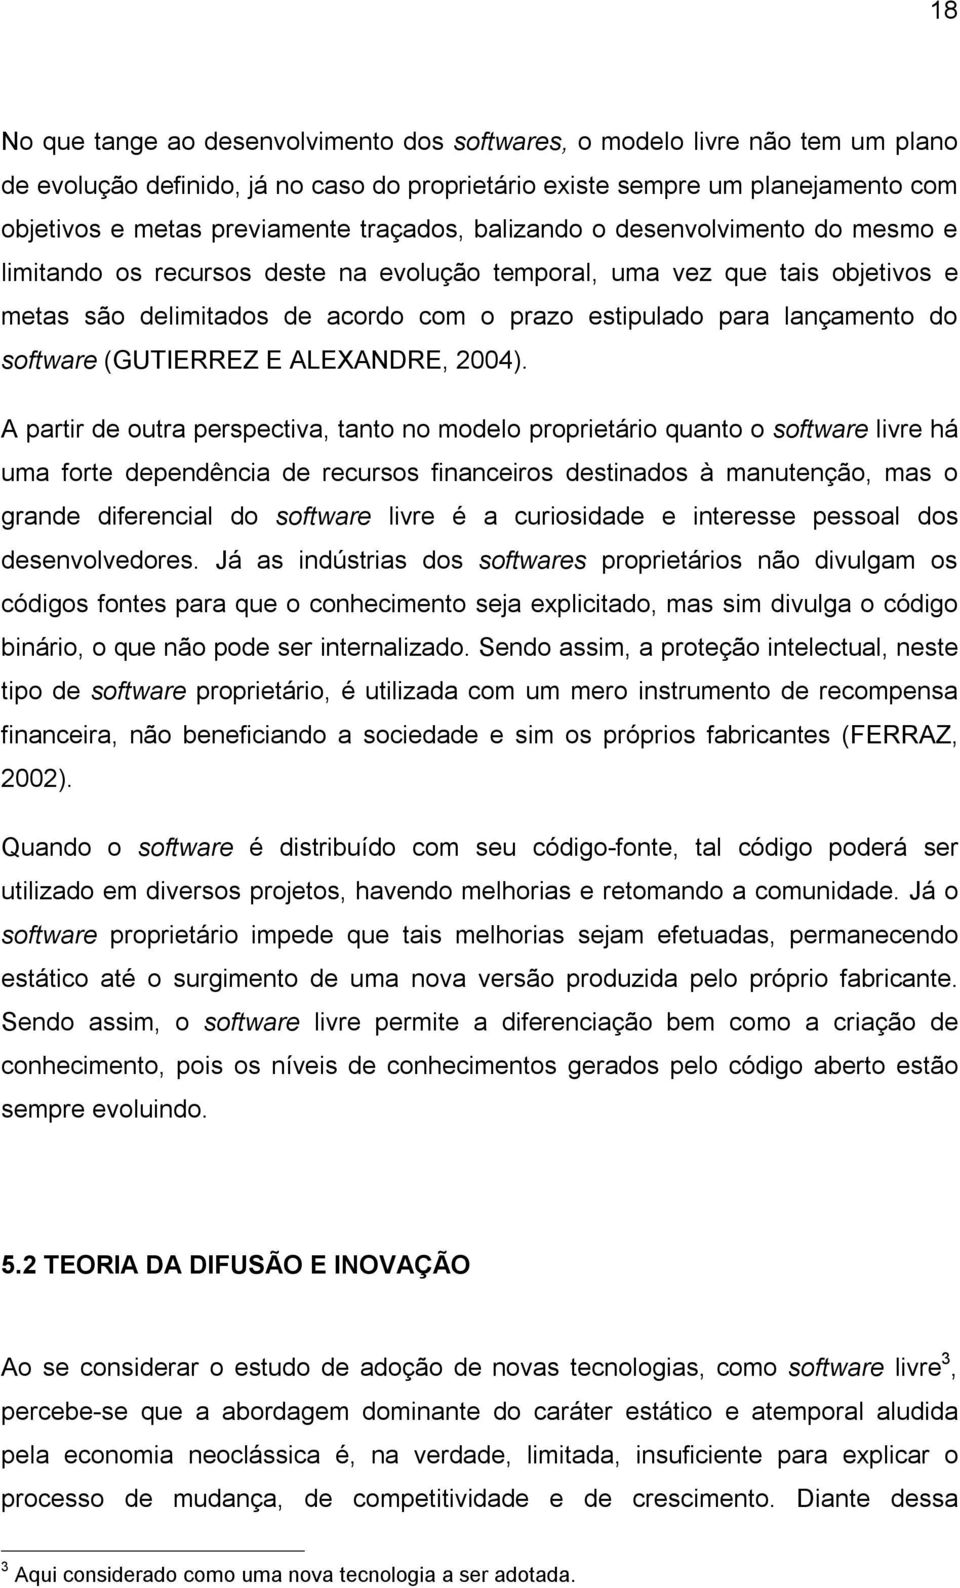 do software (GUTIERREZ E ALEXANDRE, 2004).